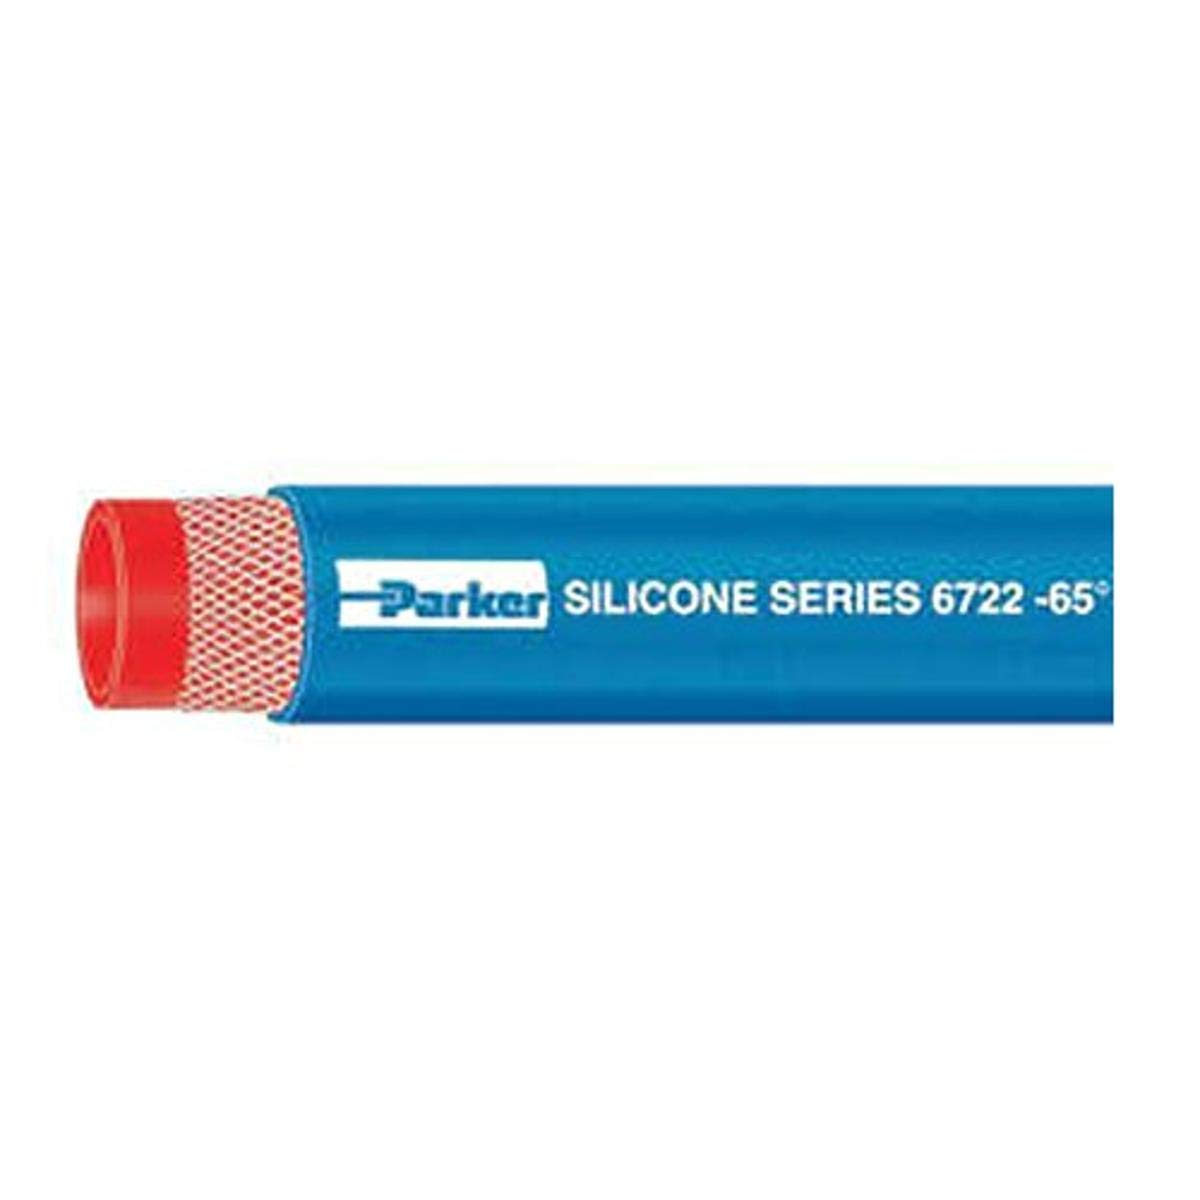 Parker Hannifin 6722-0625100 Brick Temperature Red Ranking TOP6 High Super beauty product restock quality top Silicone